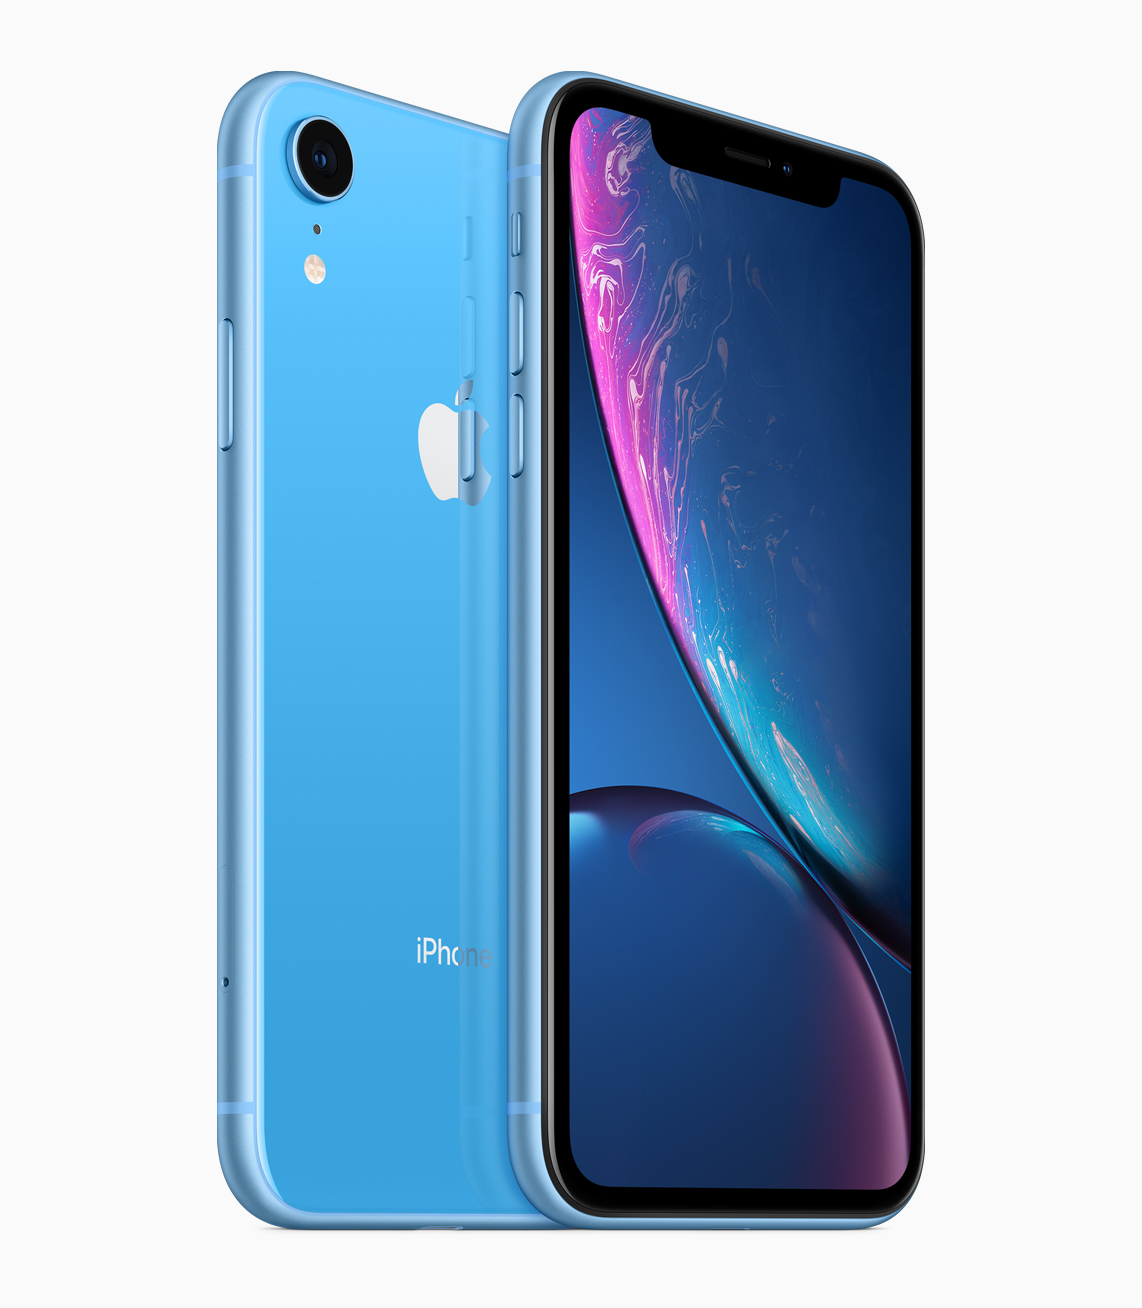 The+new+iPhone+XR+was+announced+Wednesday+at+Apple+Park.+It+will+go+on+sale+for+pre-order+starting+October+19.+Photo+courtesy+of+Apple.+All+rights+reserved.